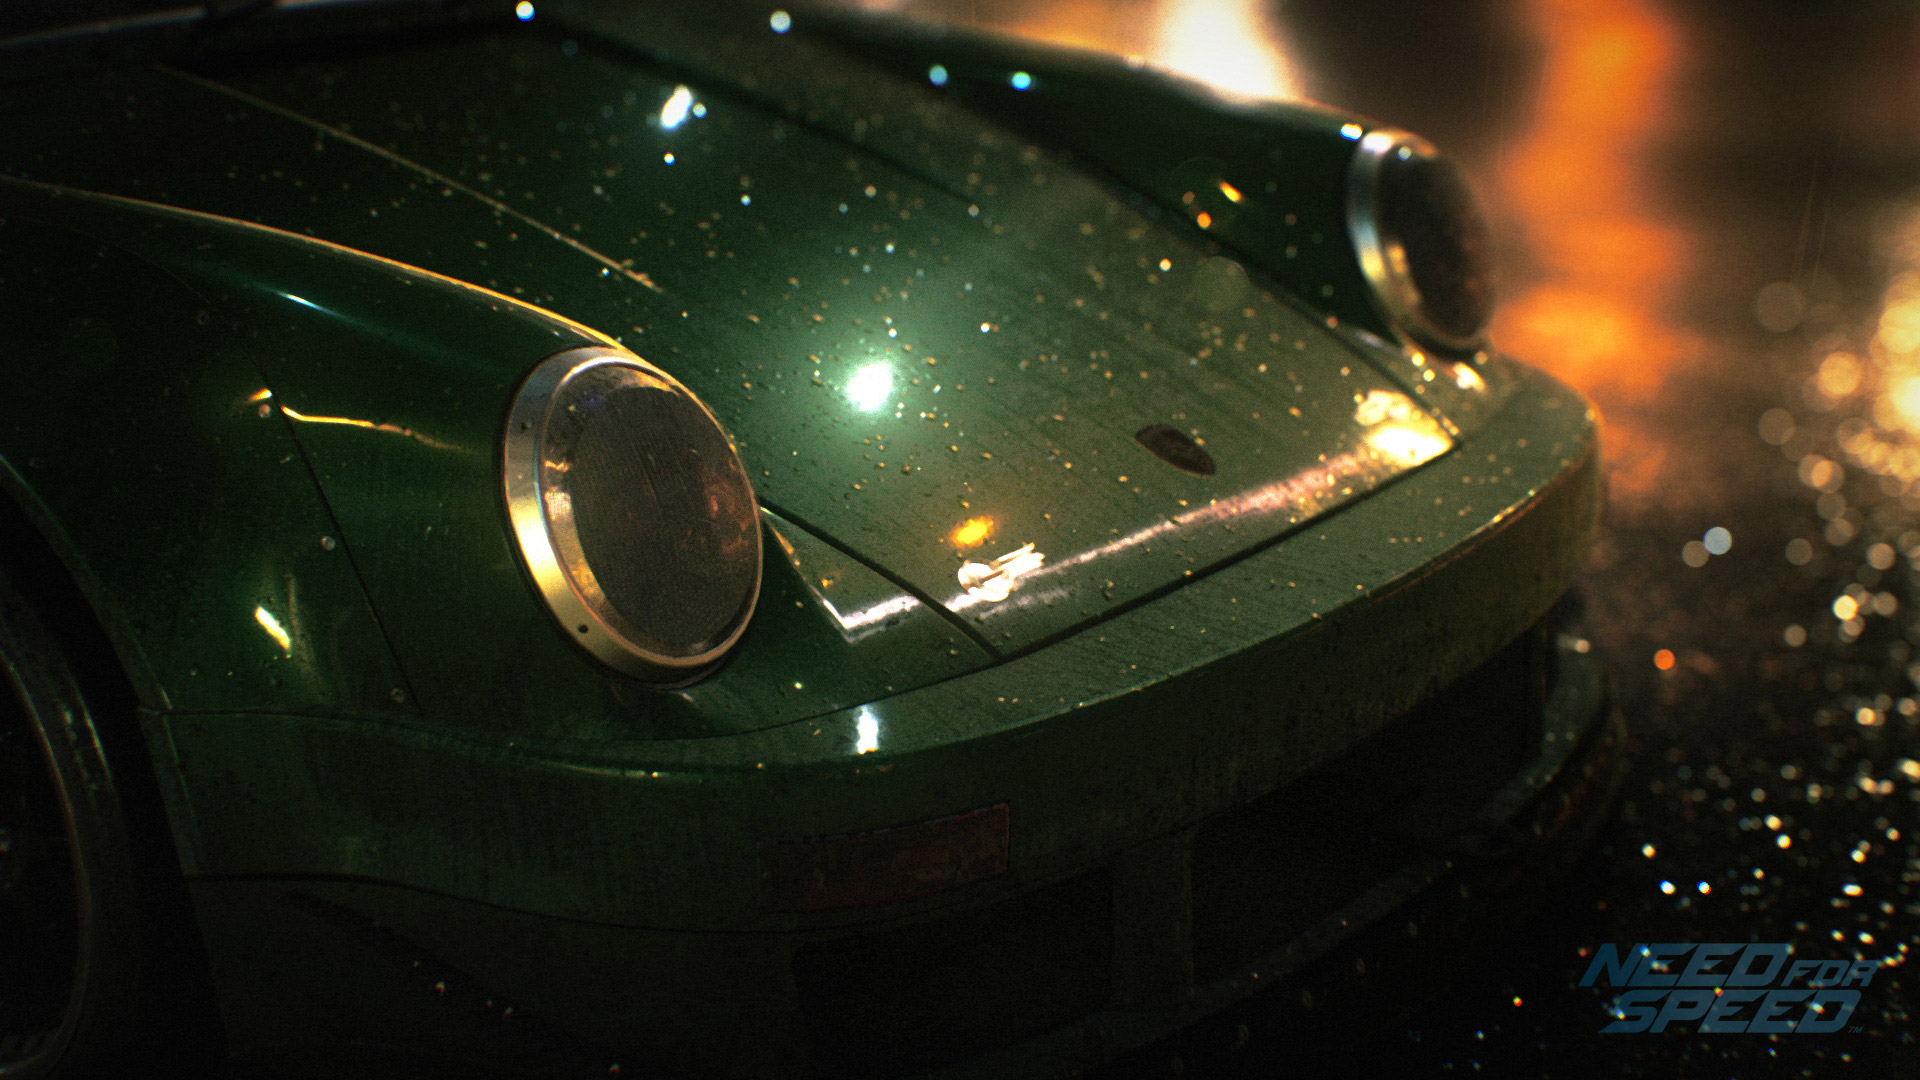 Need for Speed Wallpaper in 1920x1080